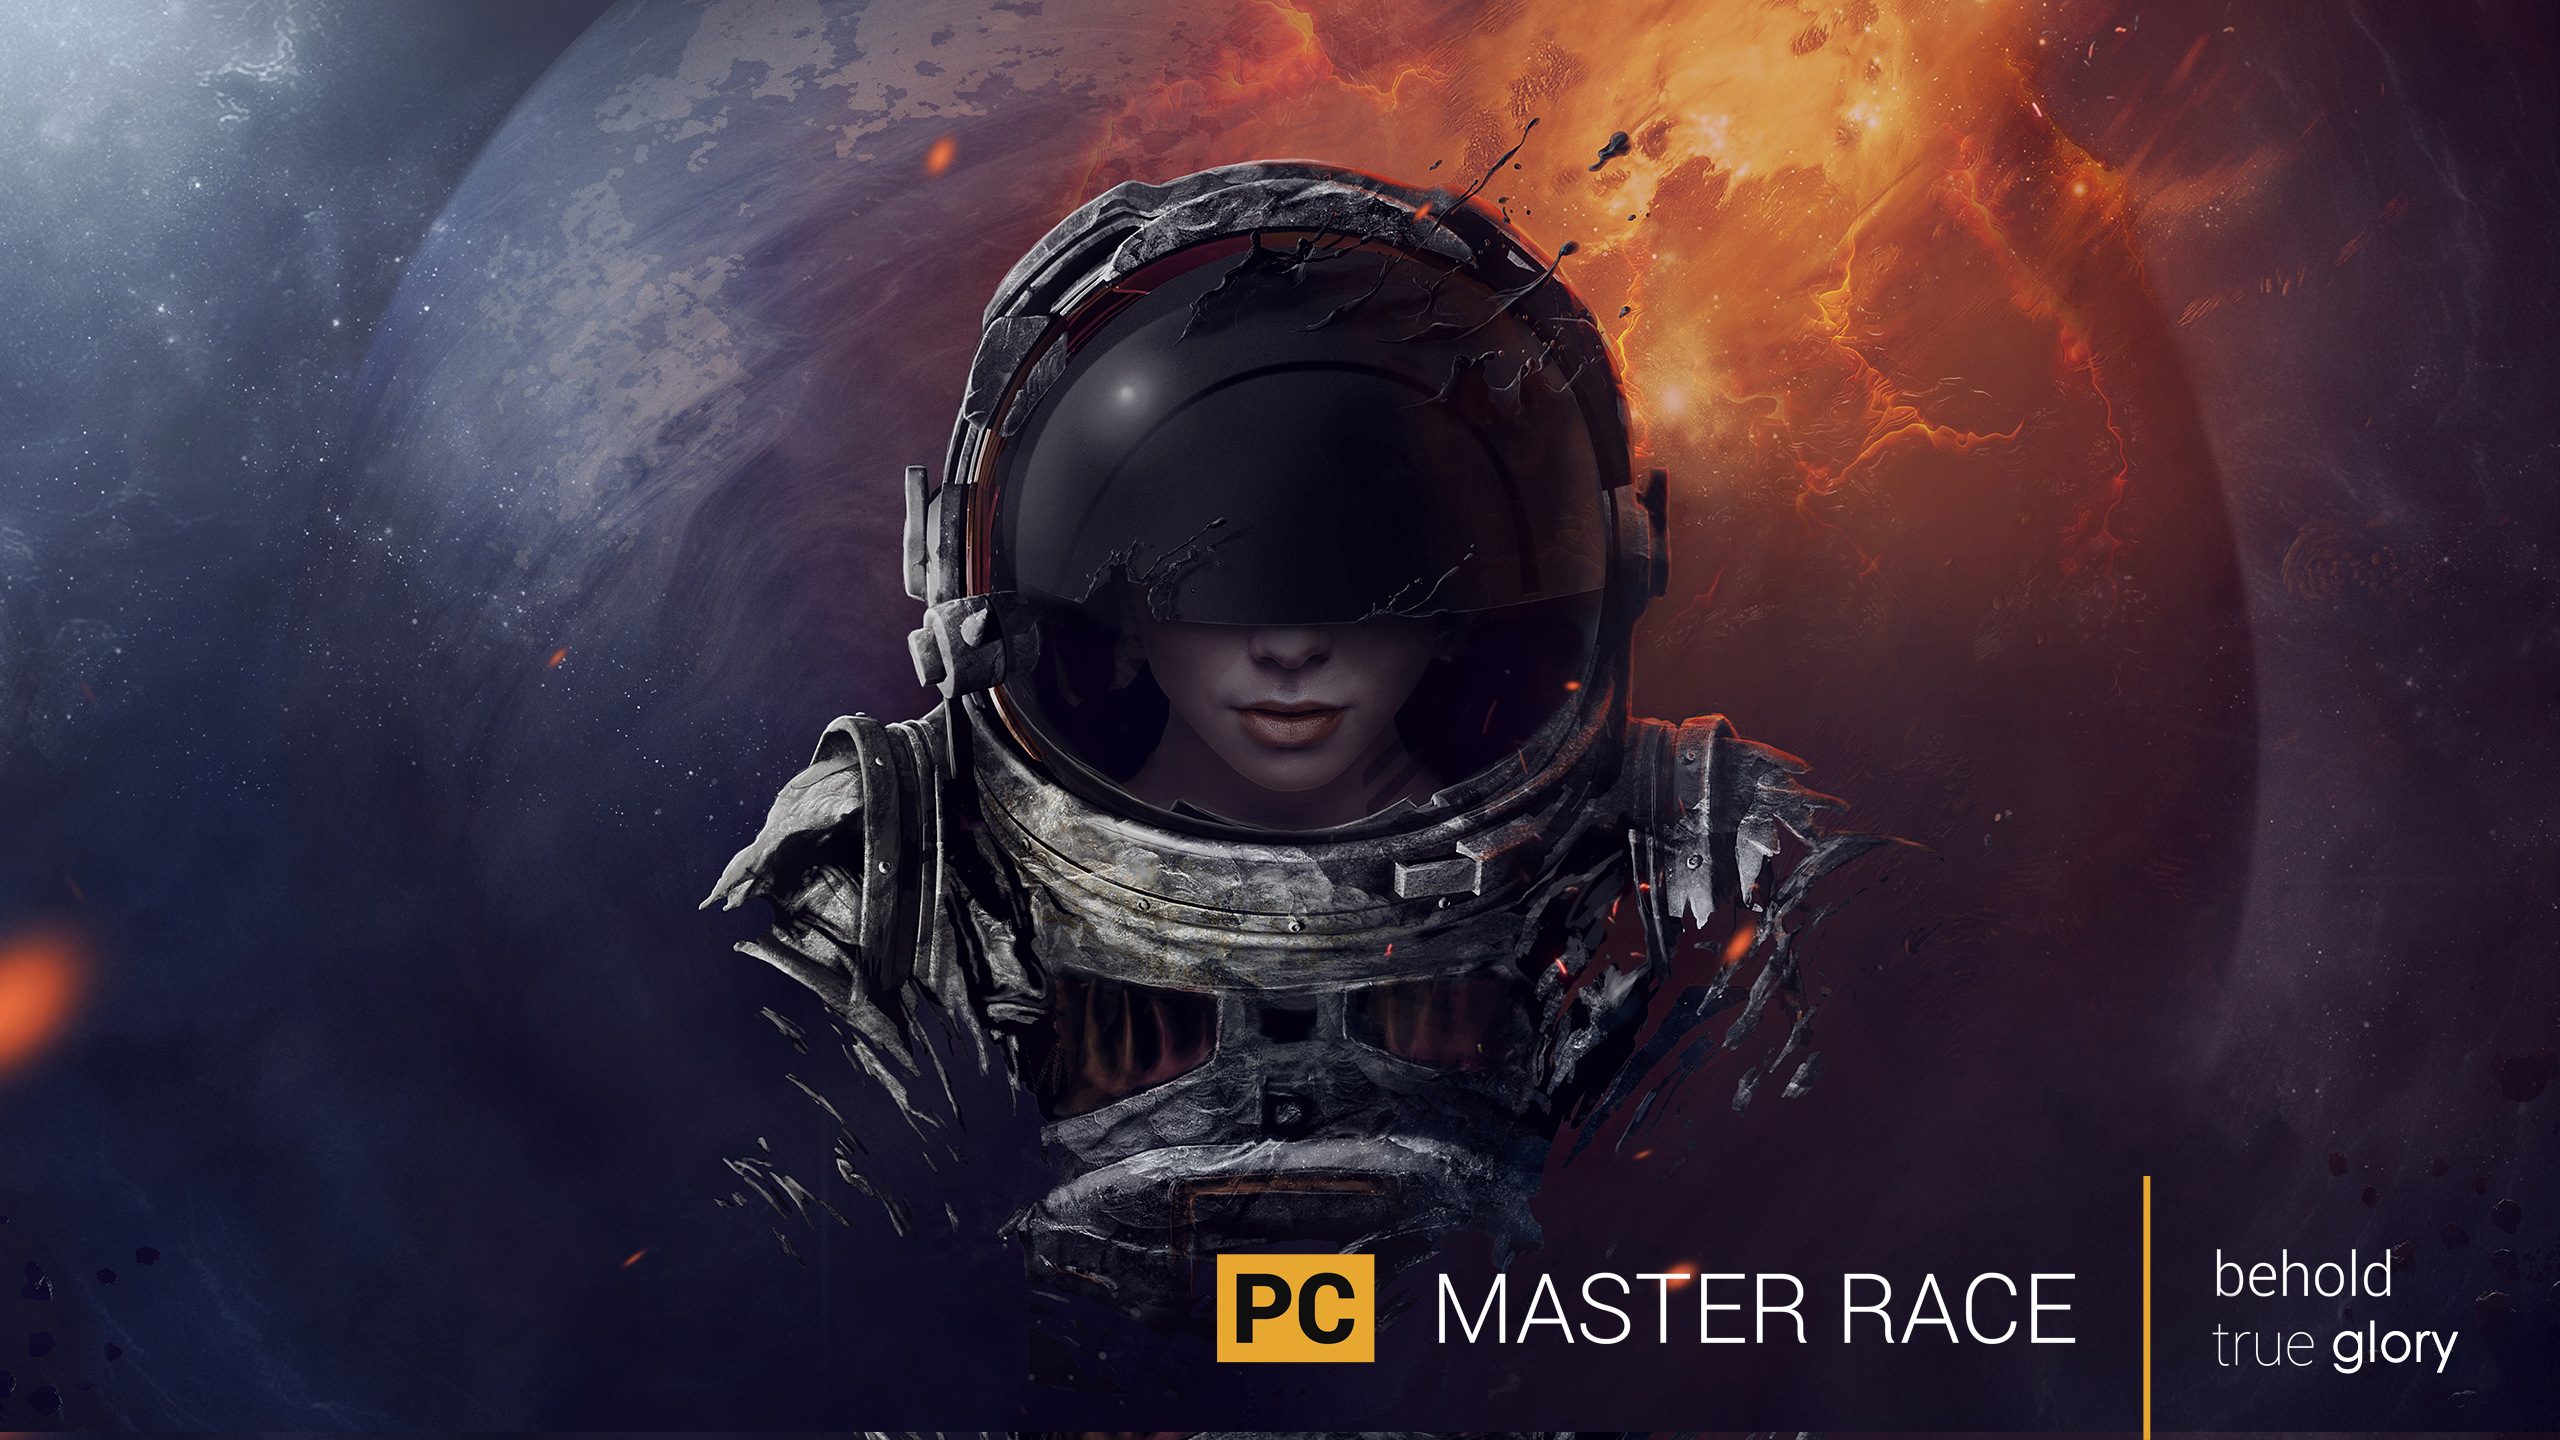 pc master race wallpaper - photo #23